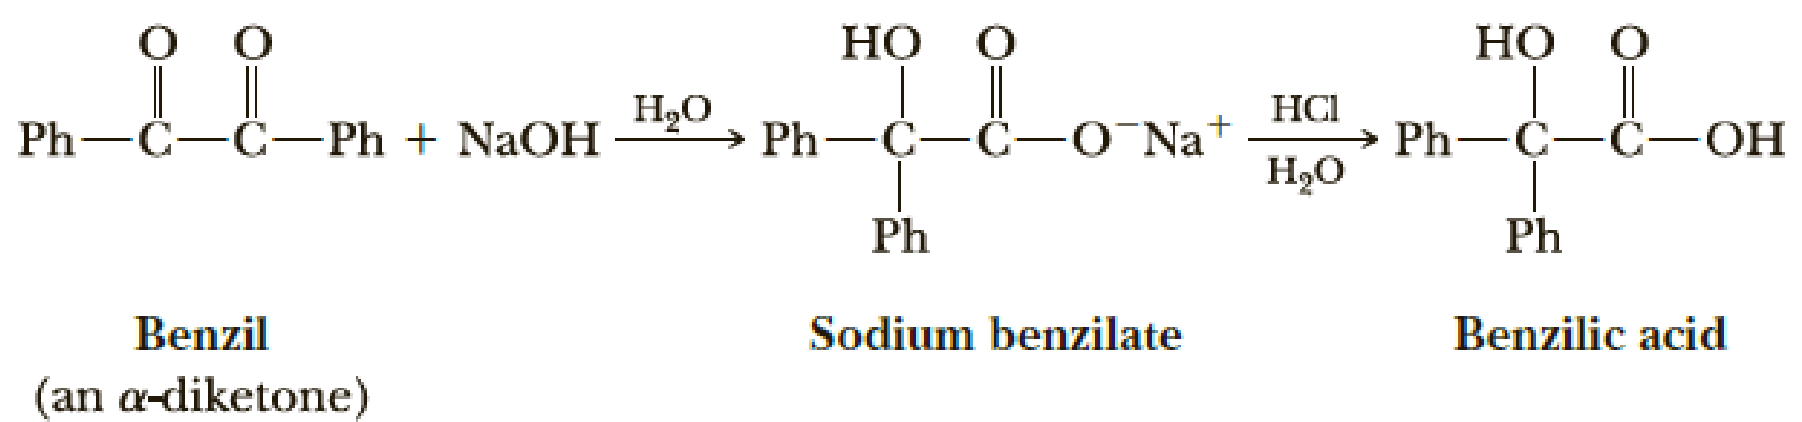 Chapter 17, Problem 17.24P, The reaction of an -diketone with concentrated sodium or potassium hydroxide to give the salt of an